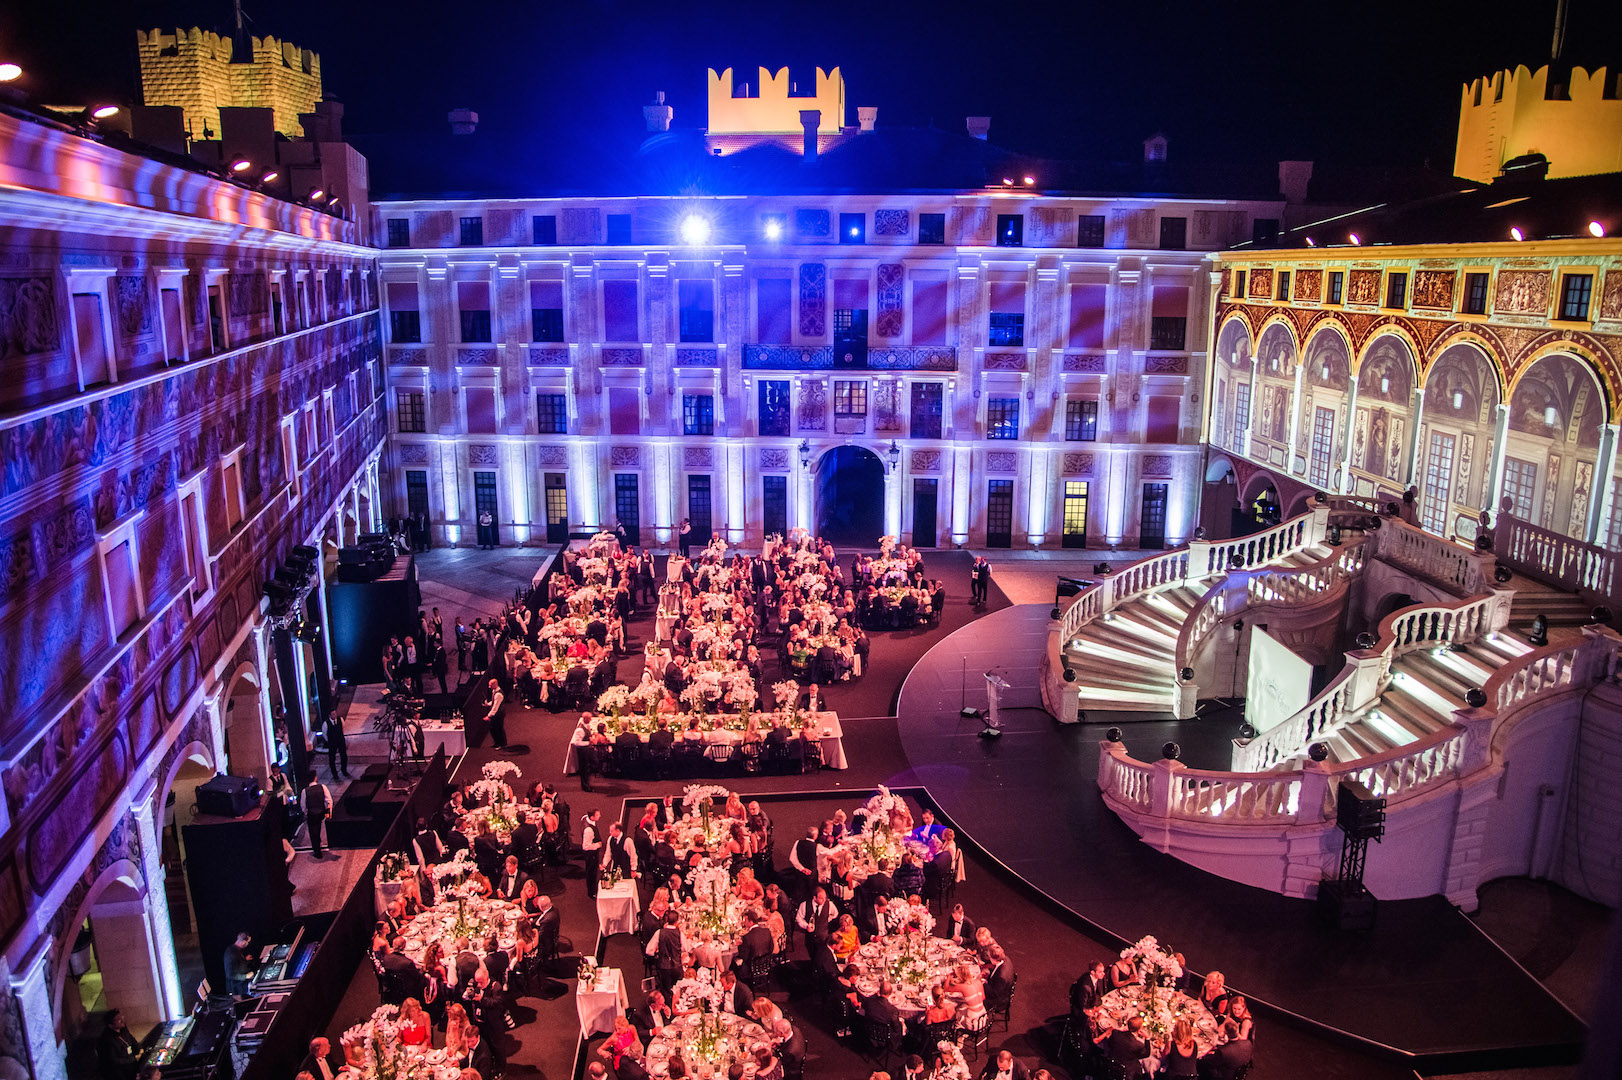 MONTE-CARLO, MONACO - SEPTEMBER 05:  General view of atmoshere during the 2015 Princess Grace Awards Gala With Presenting Sponsor Christian Dior Couture at Monaco Palace on September 5, 2015 in Monte-Carlo, Monaco.  (Photo by Pascal Le Segretain/Getty Images for Princess Grace Foundation-USA)